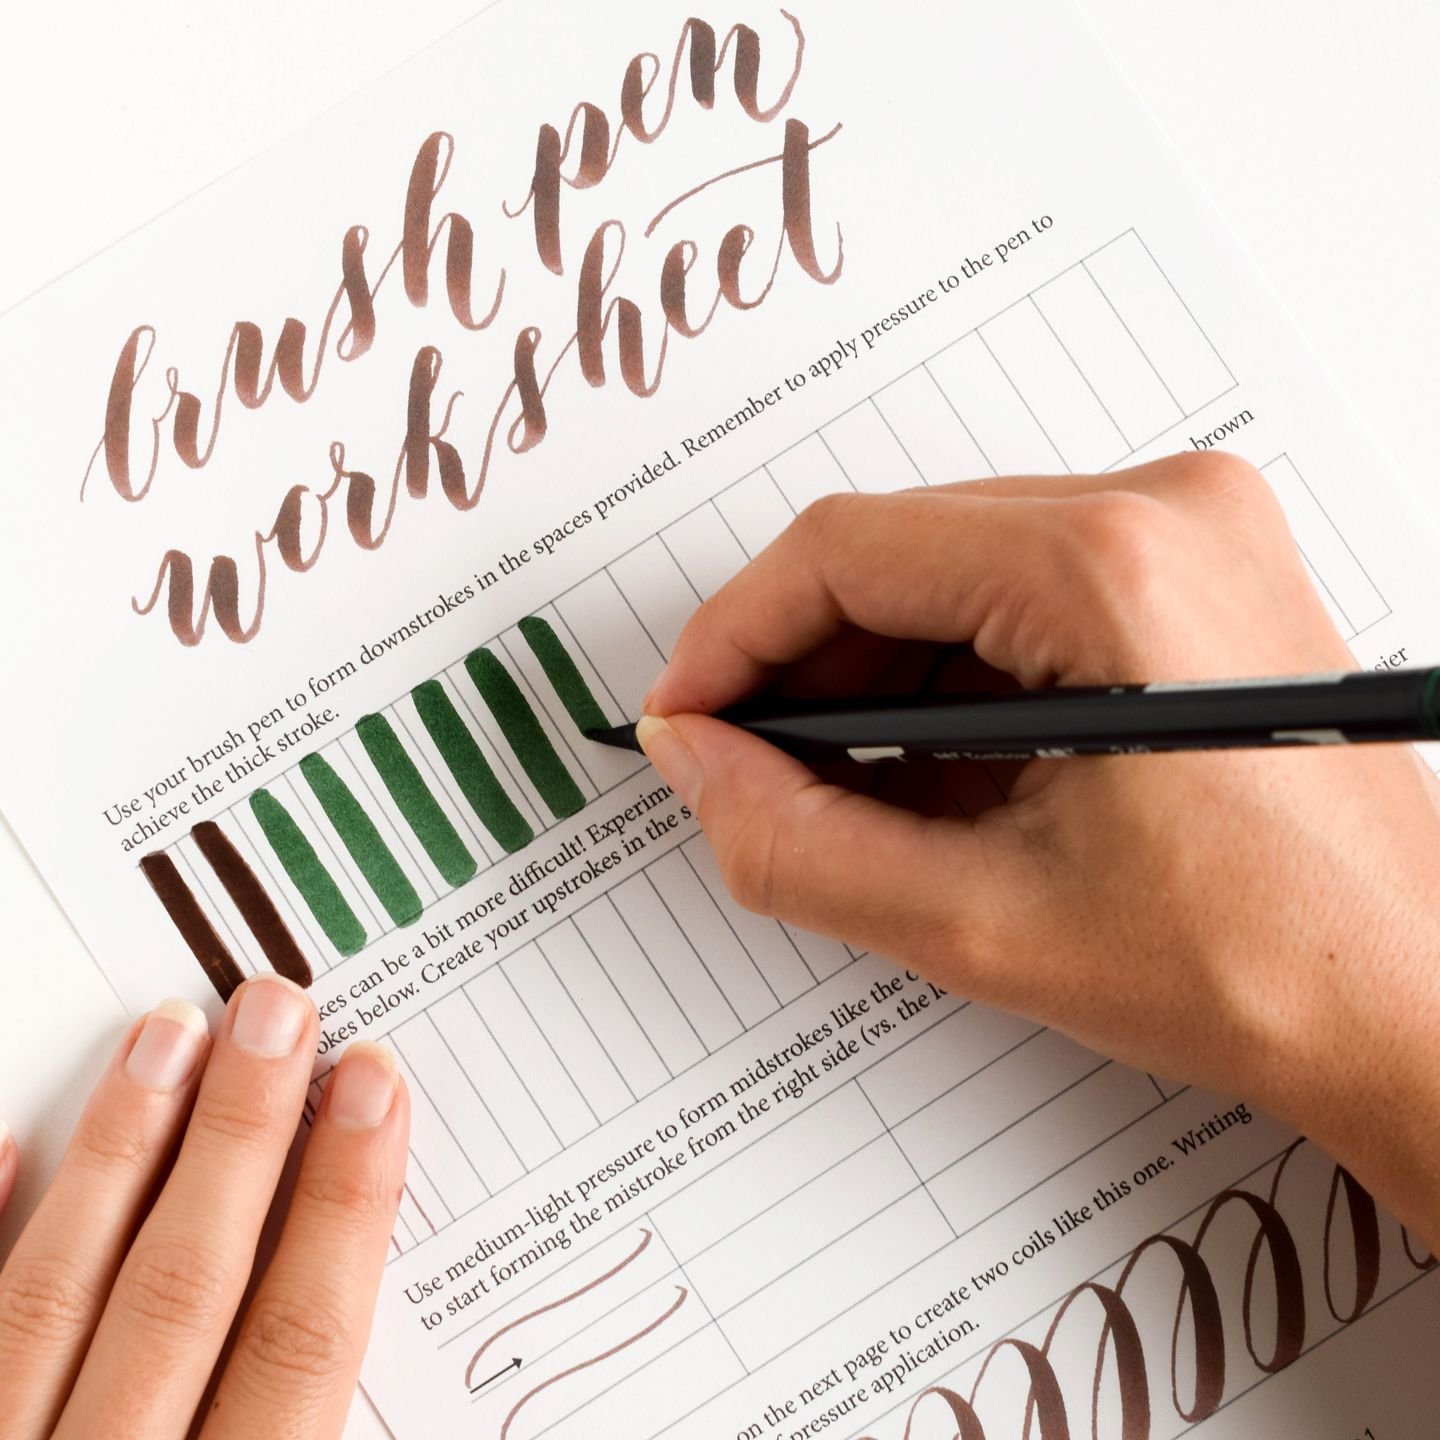 Free Basic Brush Pen Calligraphy Worksheet | Kalligraphie und Neuer